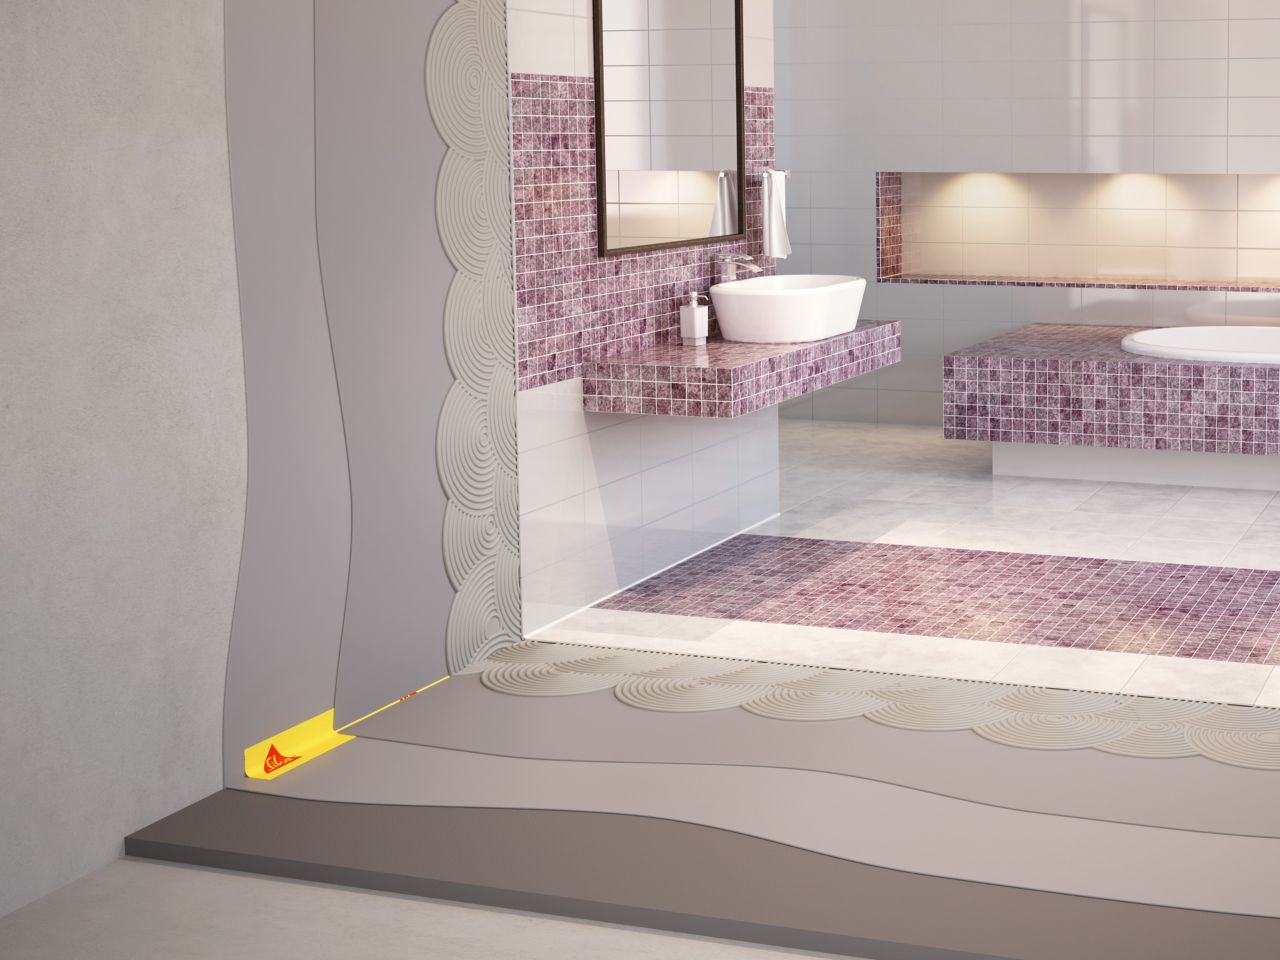 Illustration of tile setting adhesives and waterproofing tape for wet area bathroom with purple and white mosaic tiles, sink and bathtub